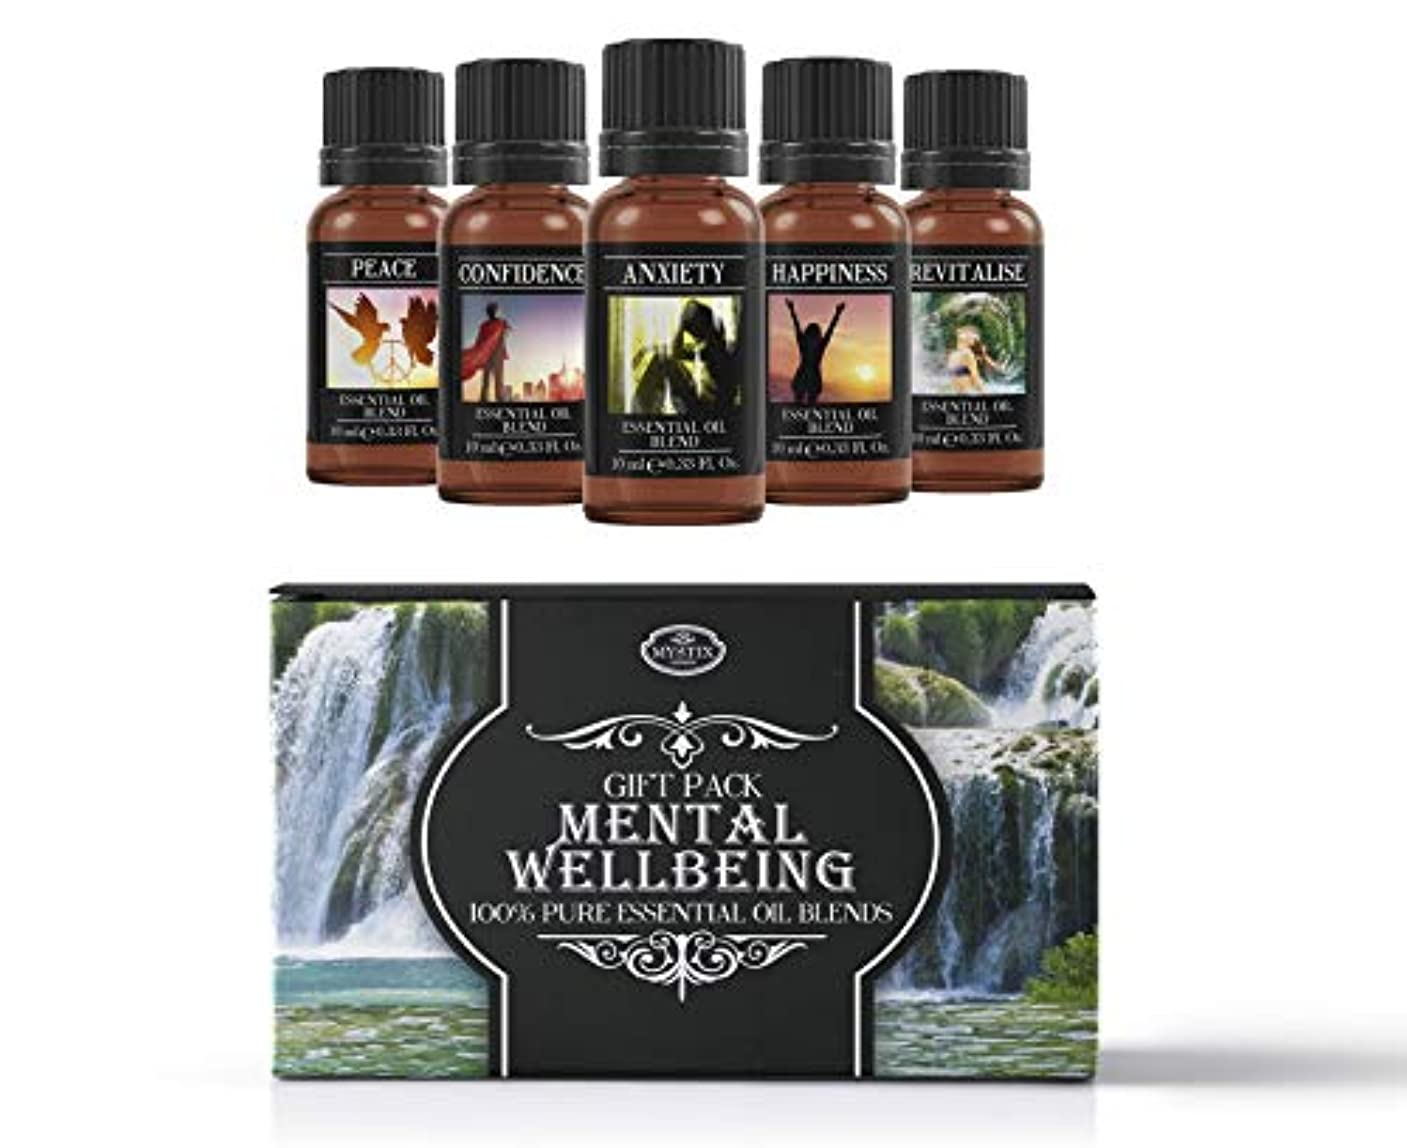 シェードオーナメント姓Mental Wellbeing | Essential Oil Blend Gift Pack | Anxiety, Confidence, Happiness, Peace, Revitalise | 100% Pure...